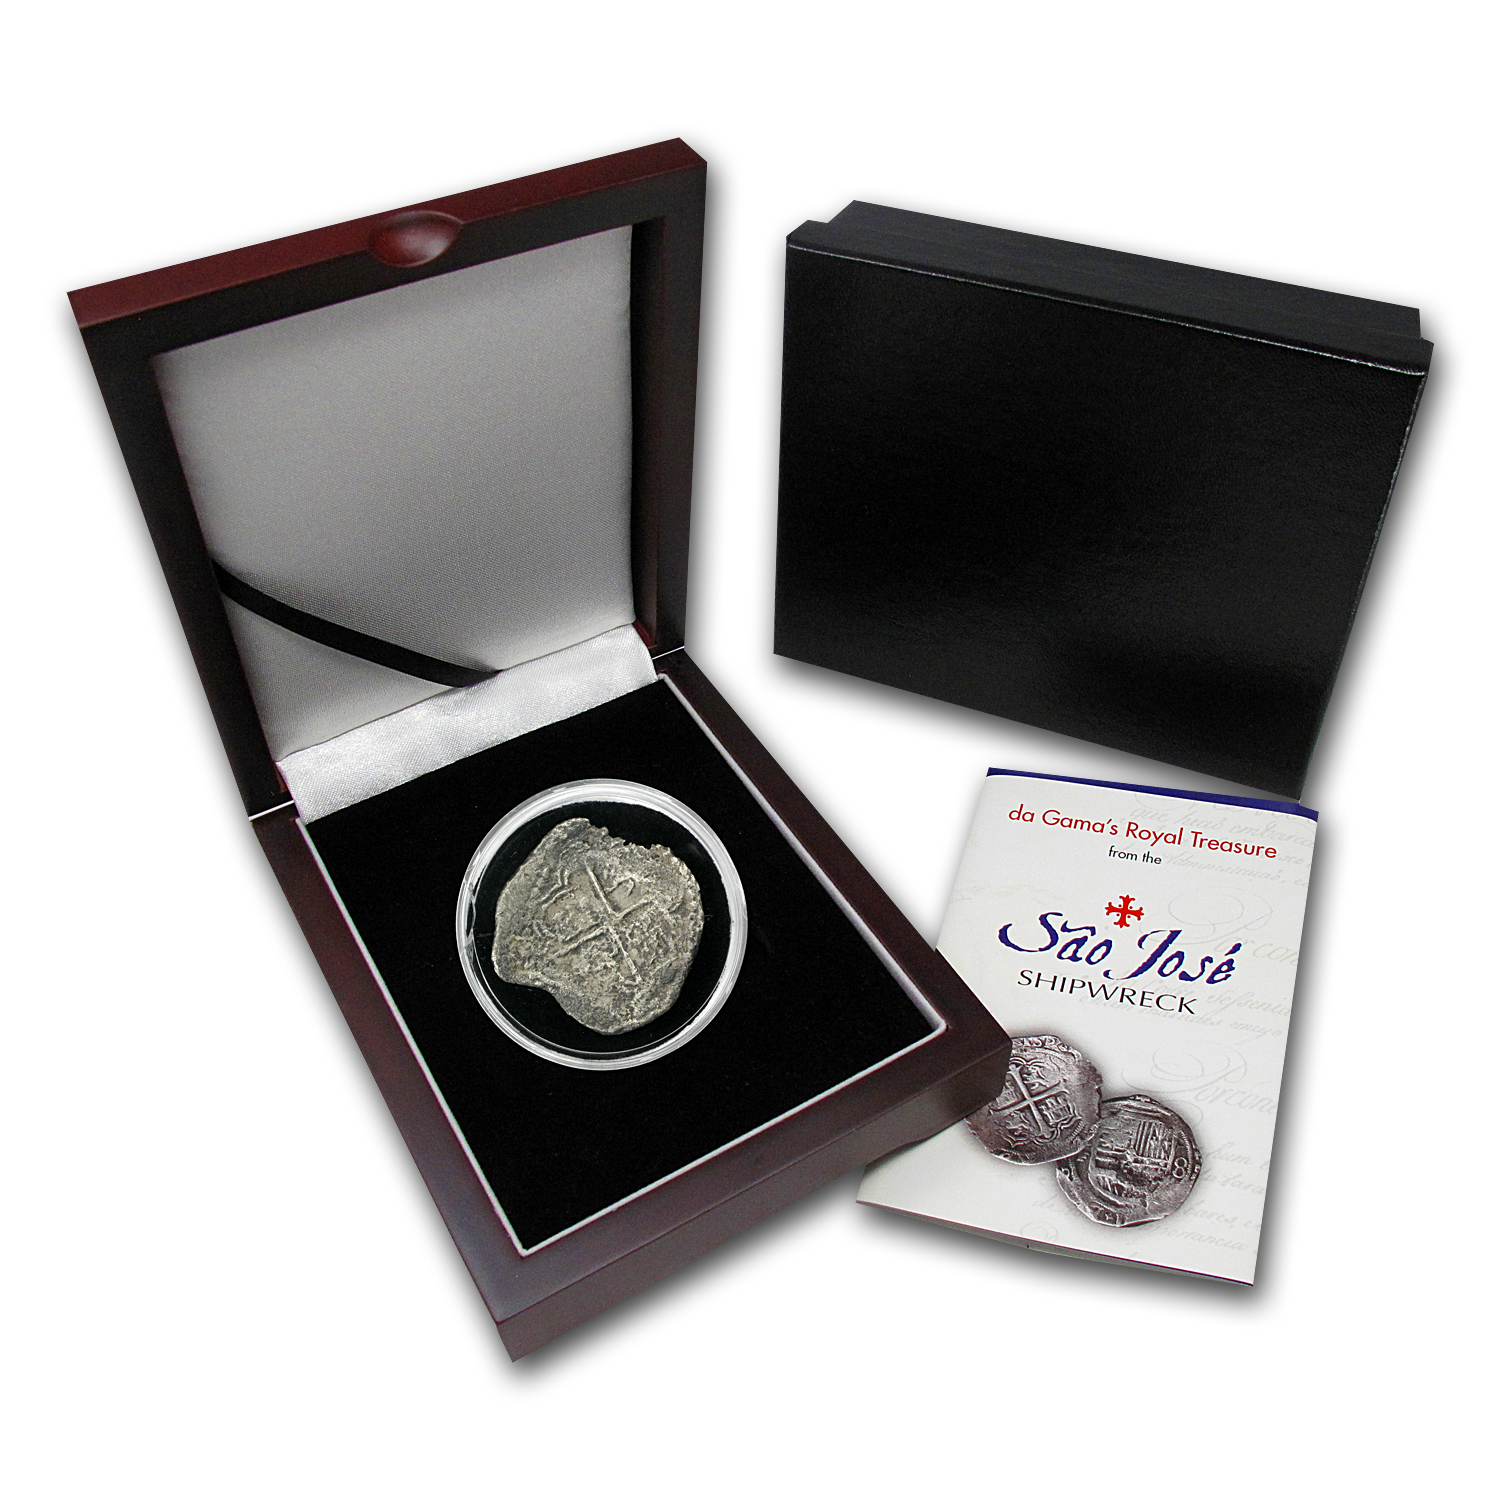 Sao Jose Shipwreck 8 Reales Silver Collection